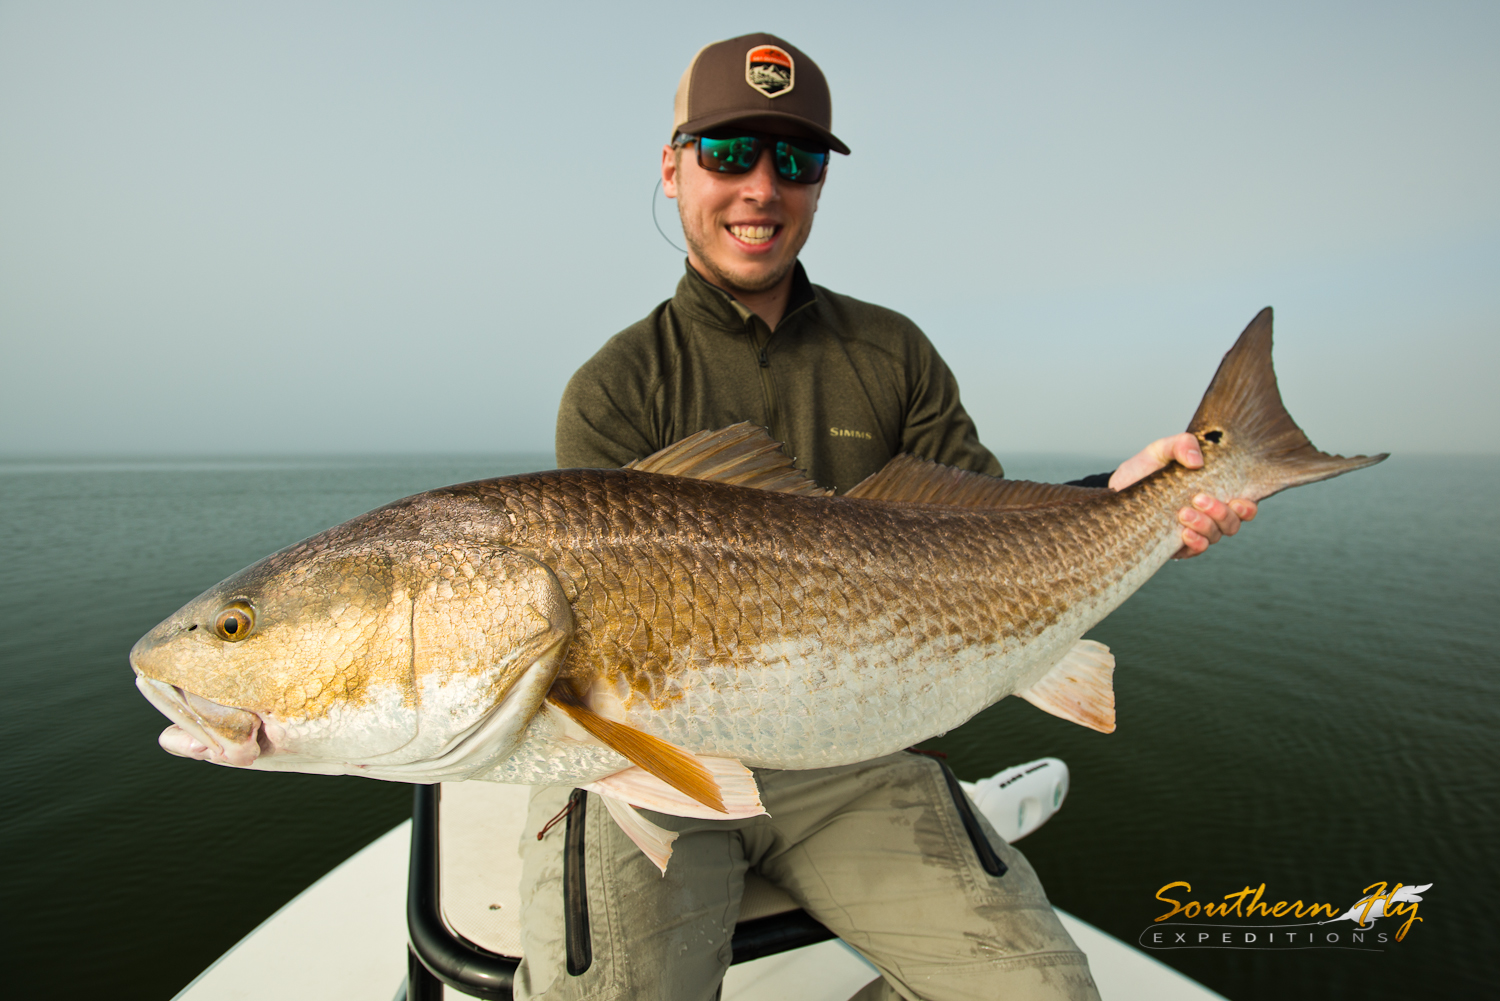 Fly Fishing Louisiana with Southern Fly Expeditions Redfish Guides of New Orleans